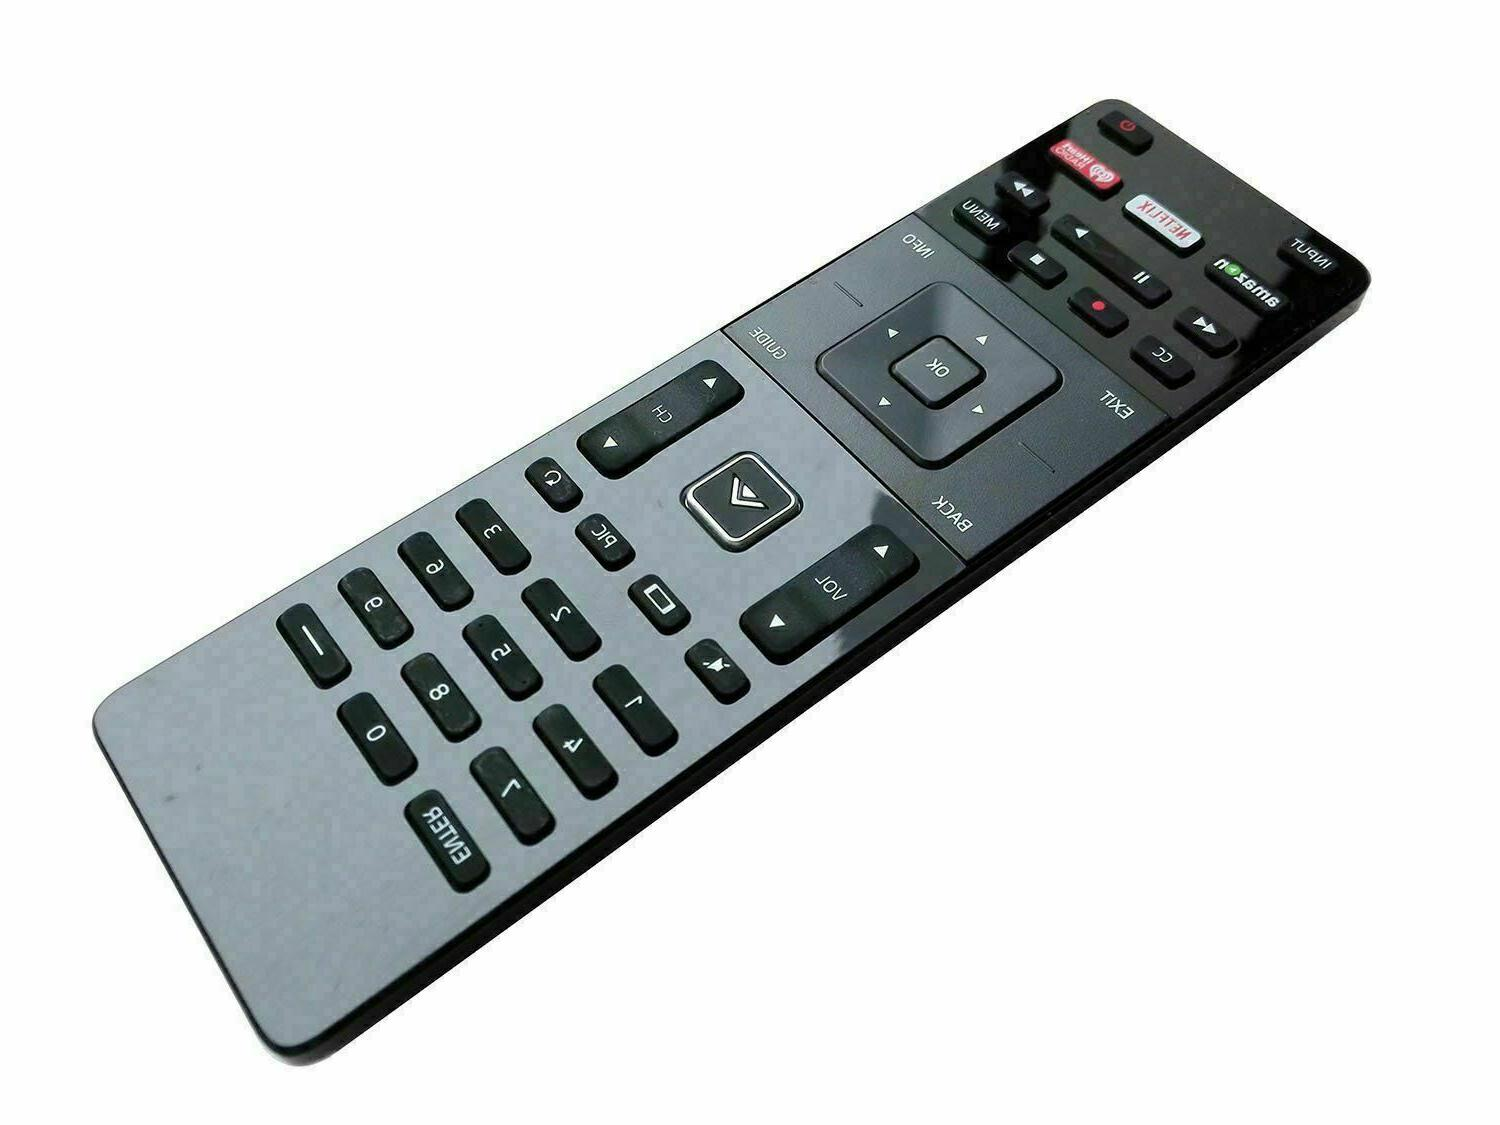 New USBRMT Smart For Vizio Key